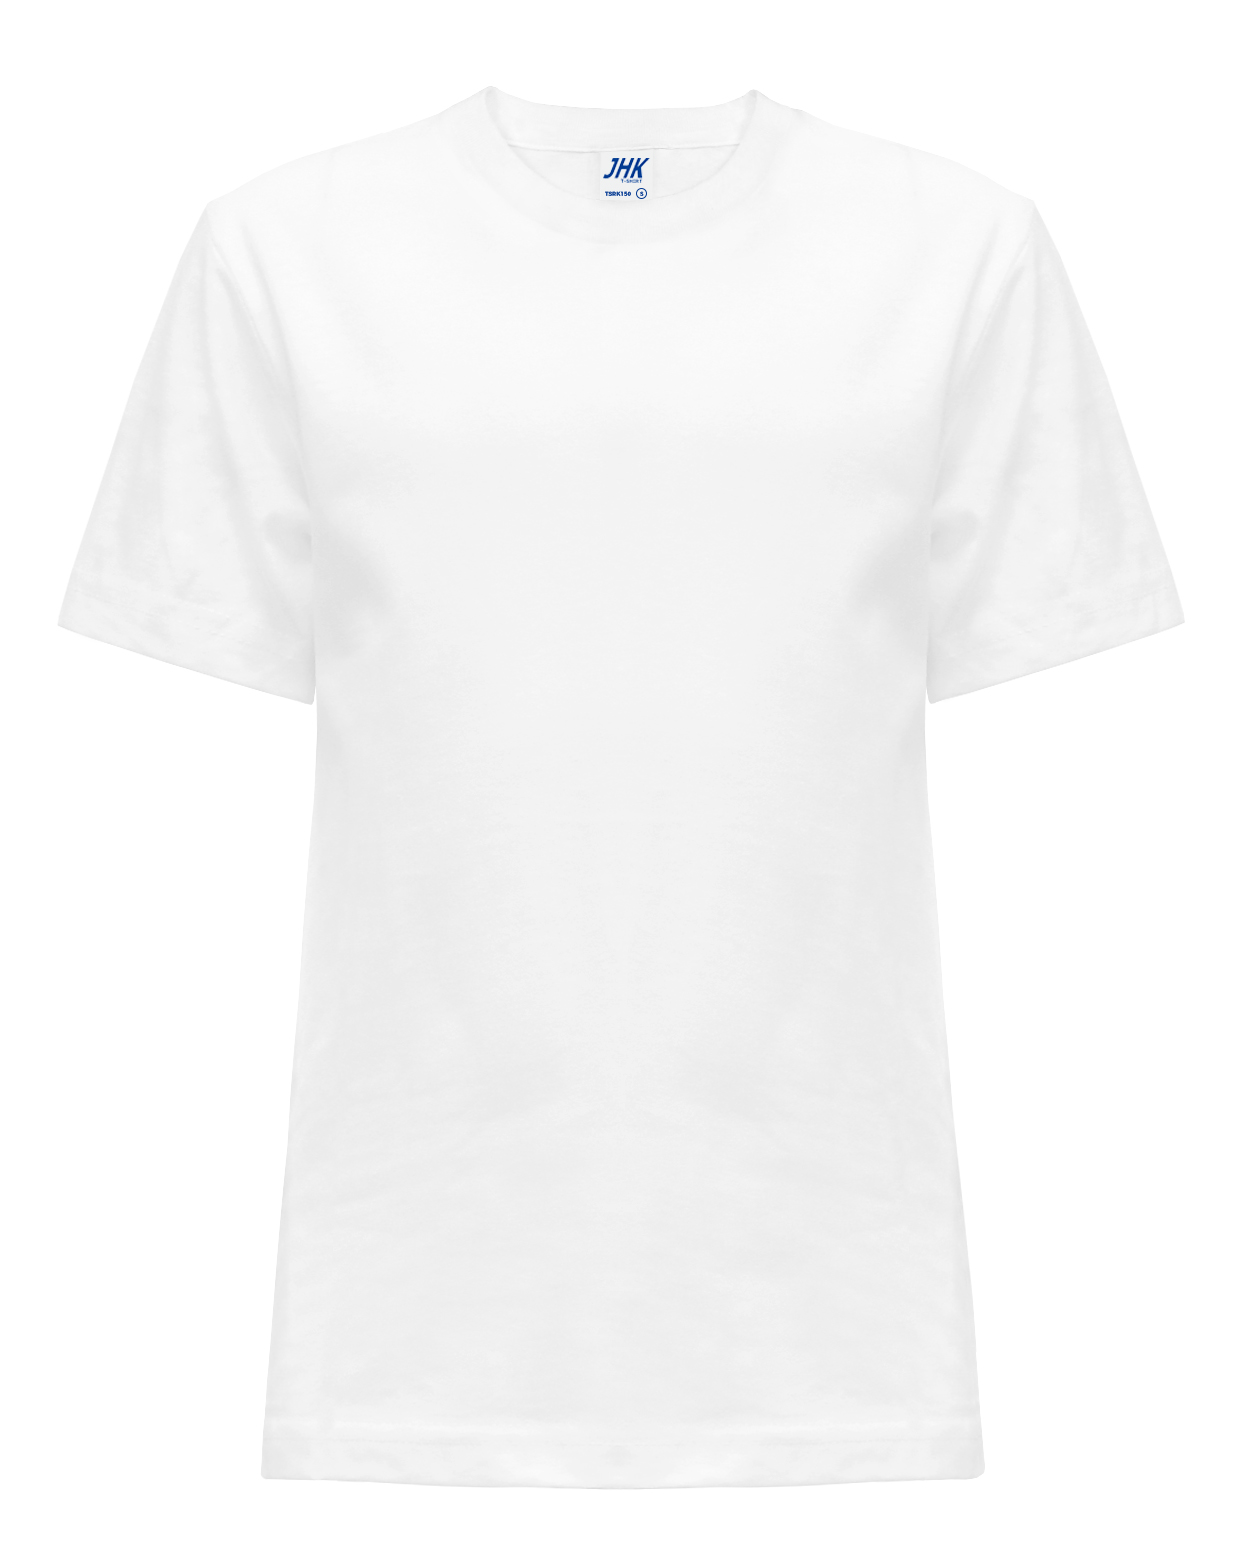 KID WHITE LONG T-SHIRT - TSRK150WLT